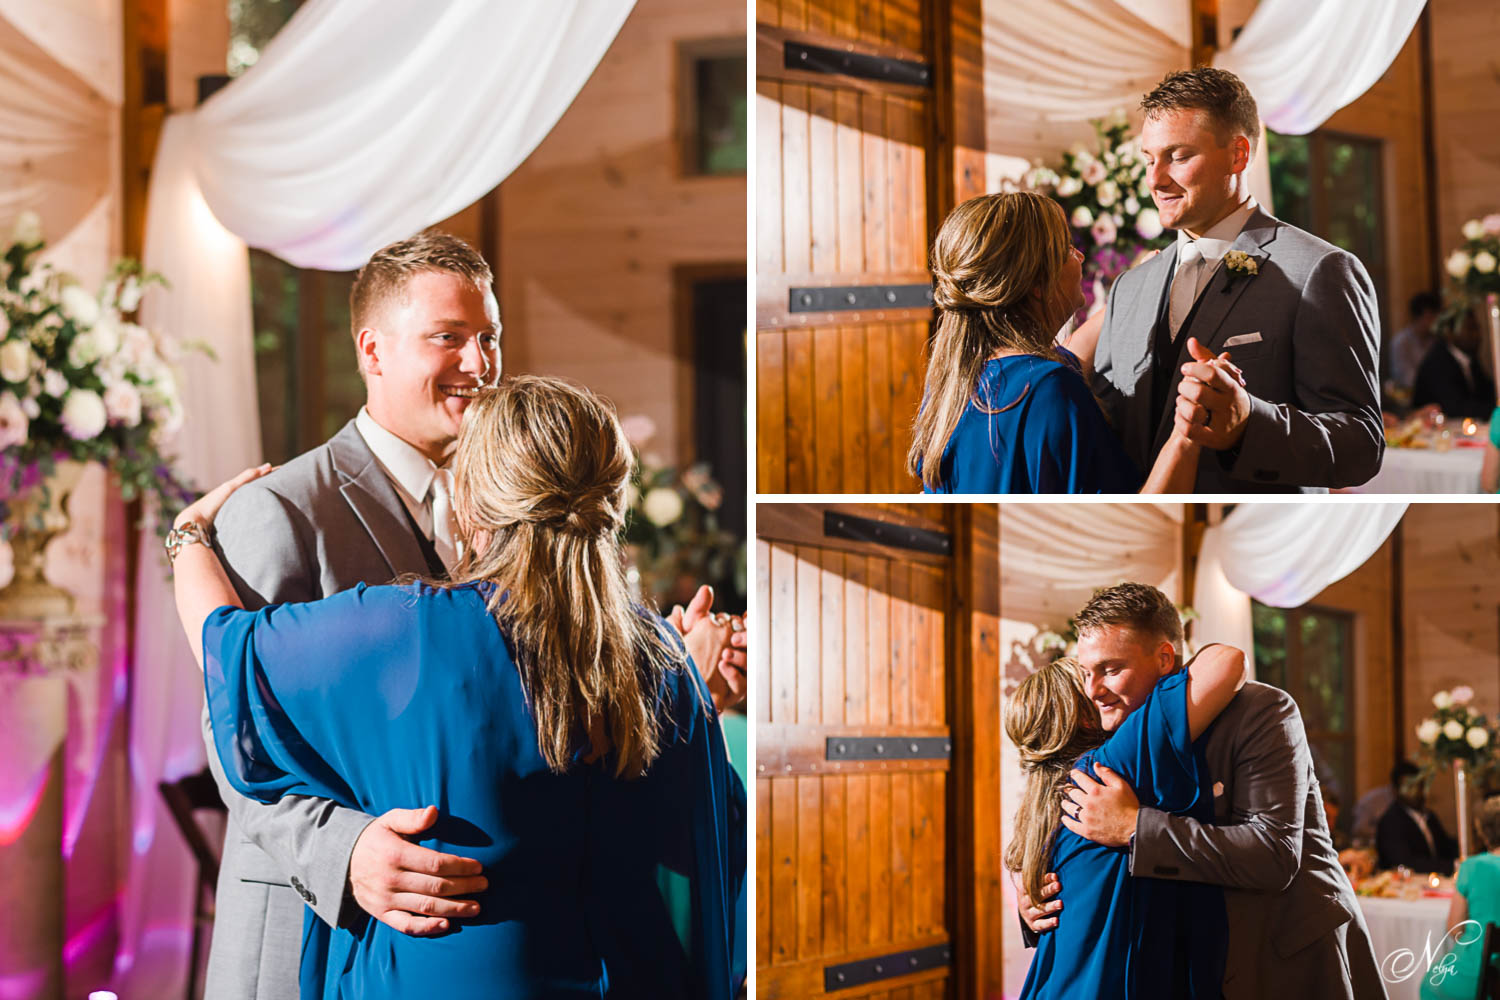 mother and her son dancing athis wedding at Hiwassee River Weddings in Delano TN